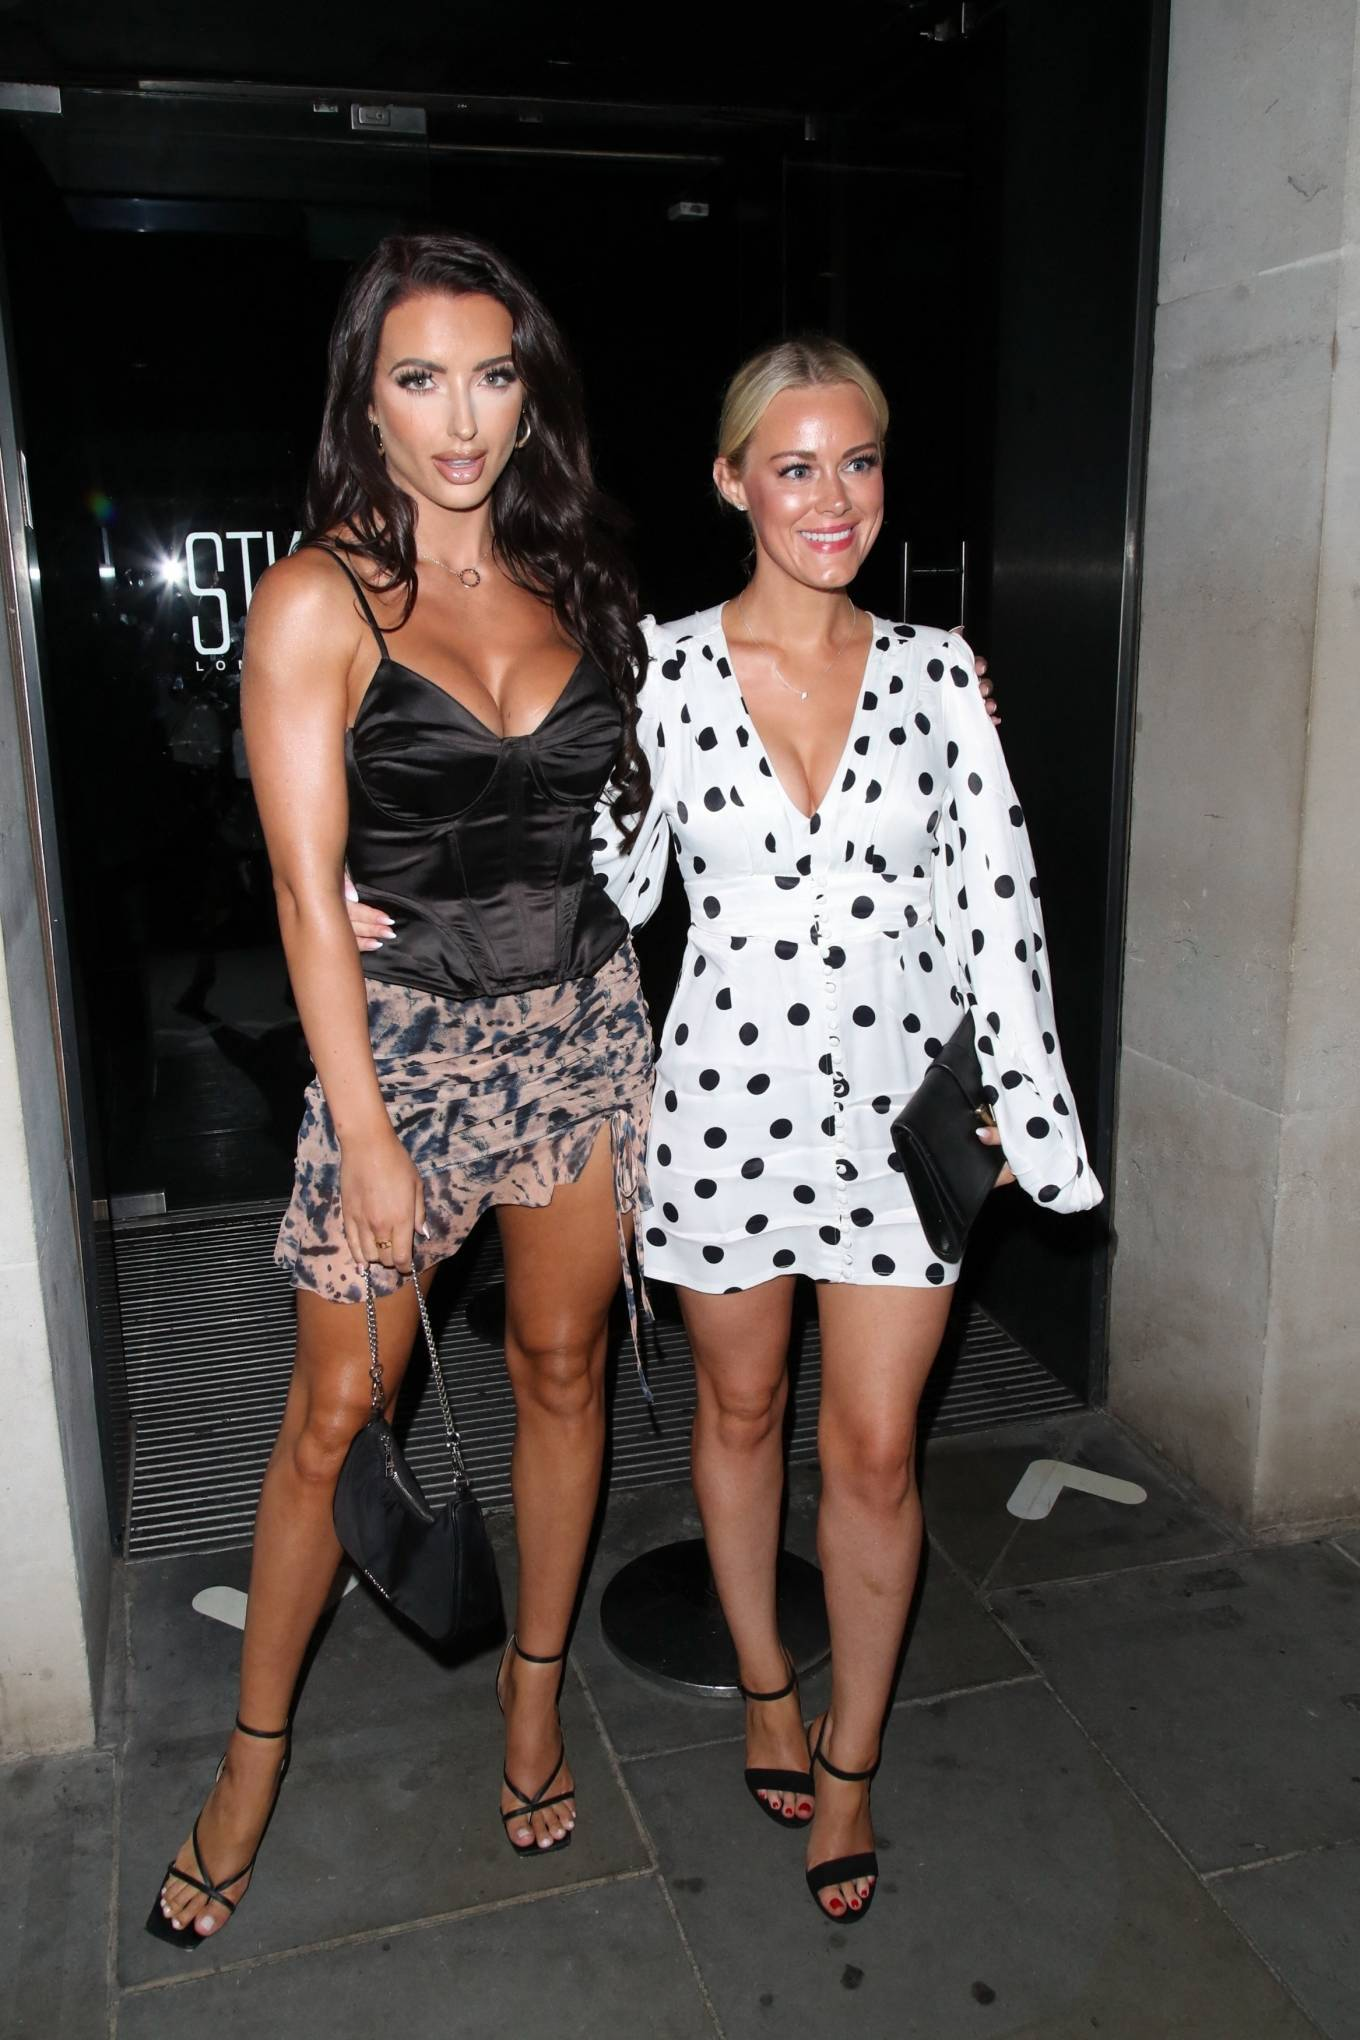 Amy Day - With Georgia Townsend seen at the STK in London